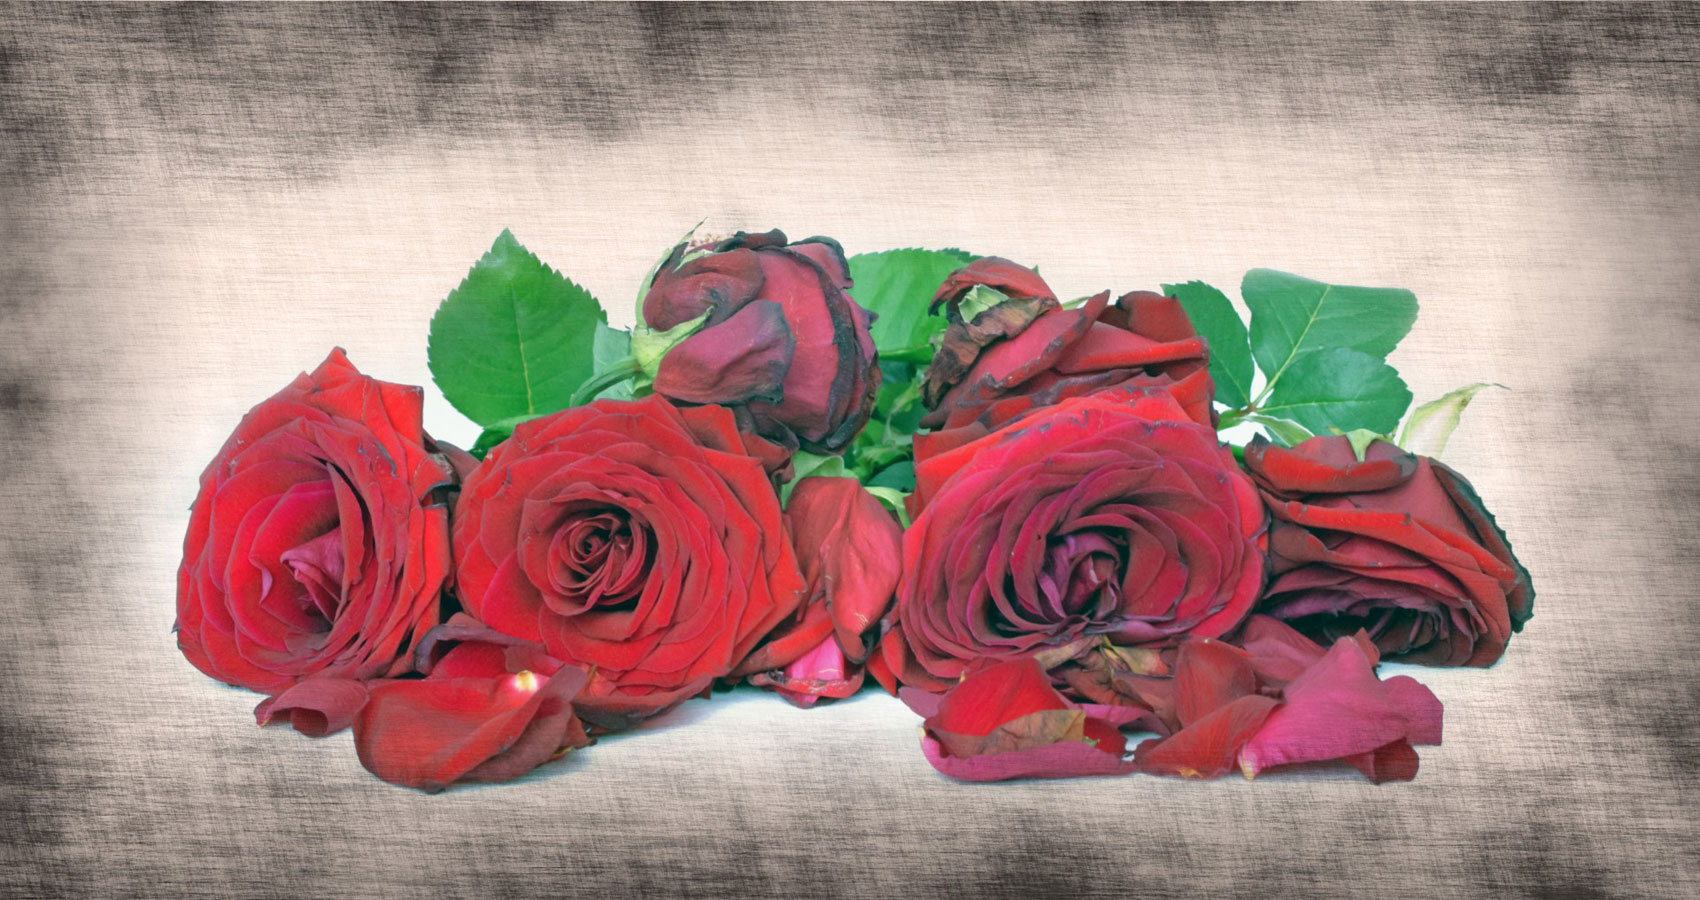 Wilted Red Roses by Michal Reibenbach at Spillwords.com